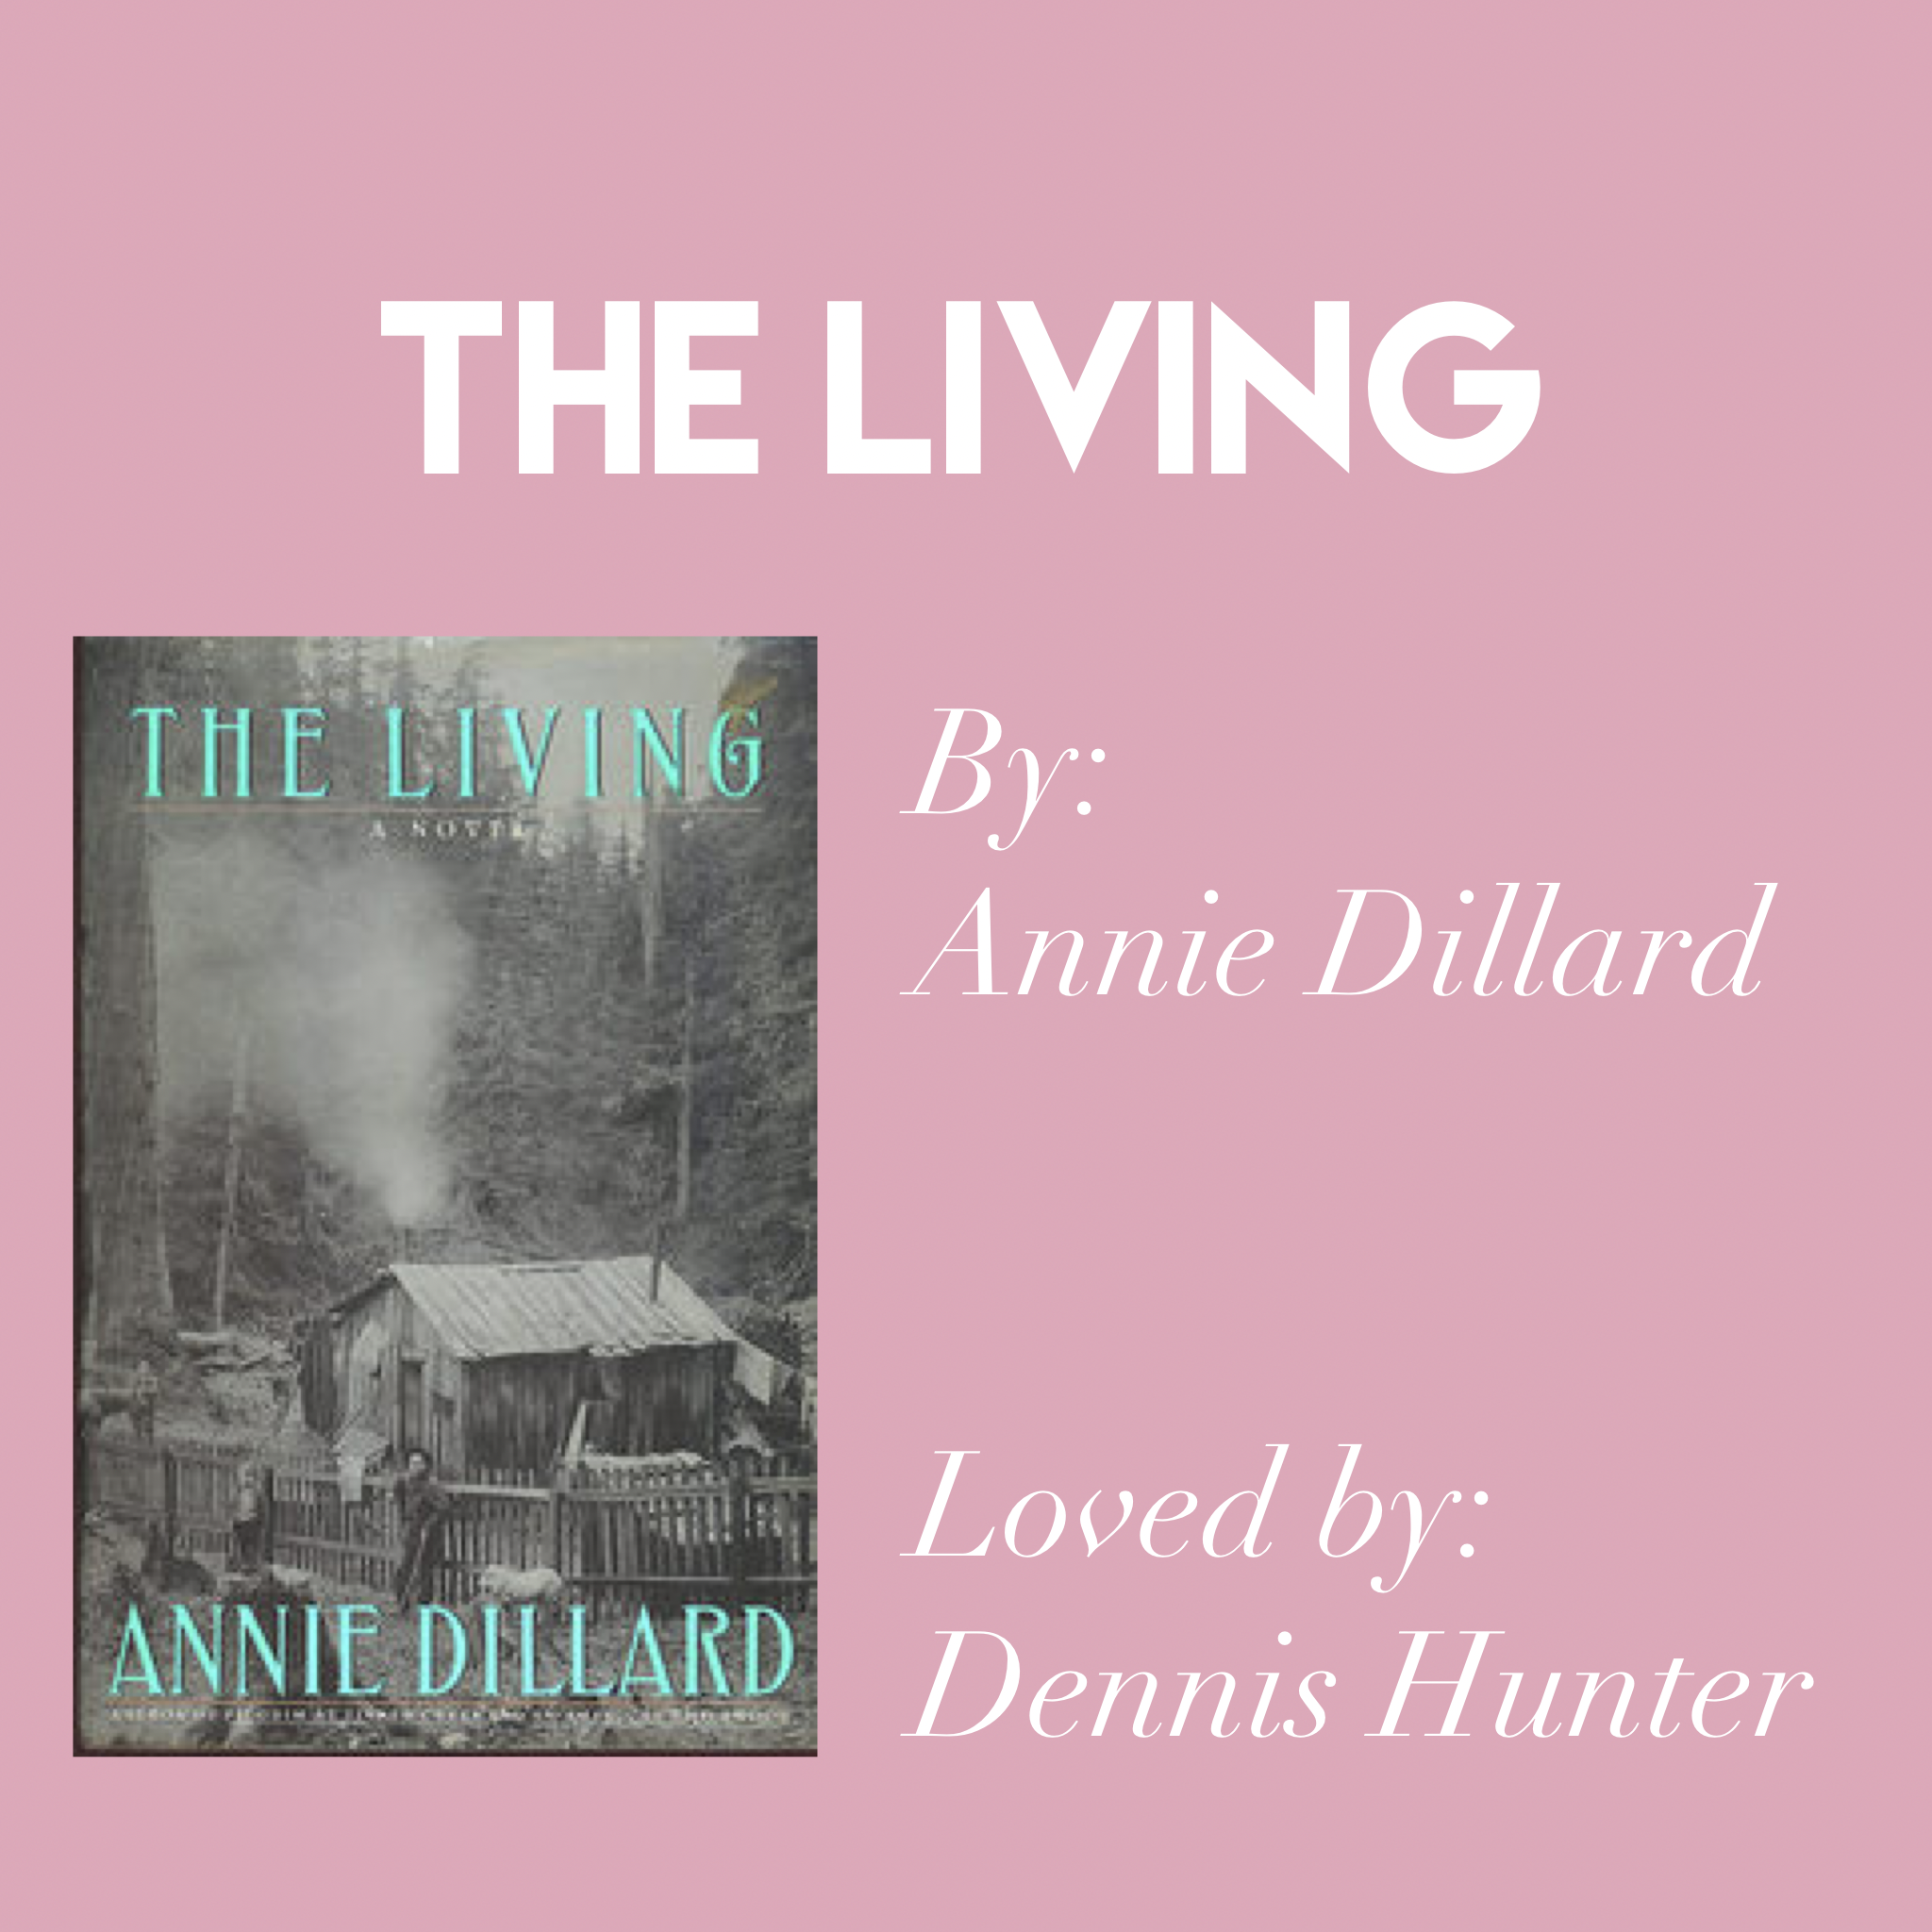 'The Living' by Annie Dillard // Loved by Dennis Hunter